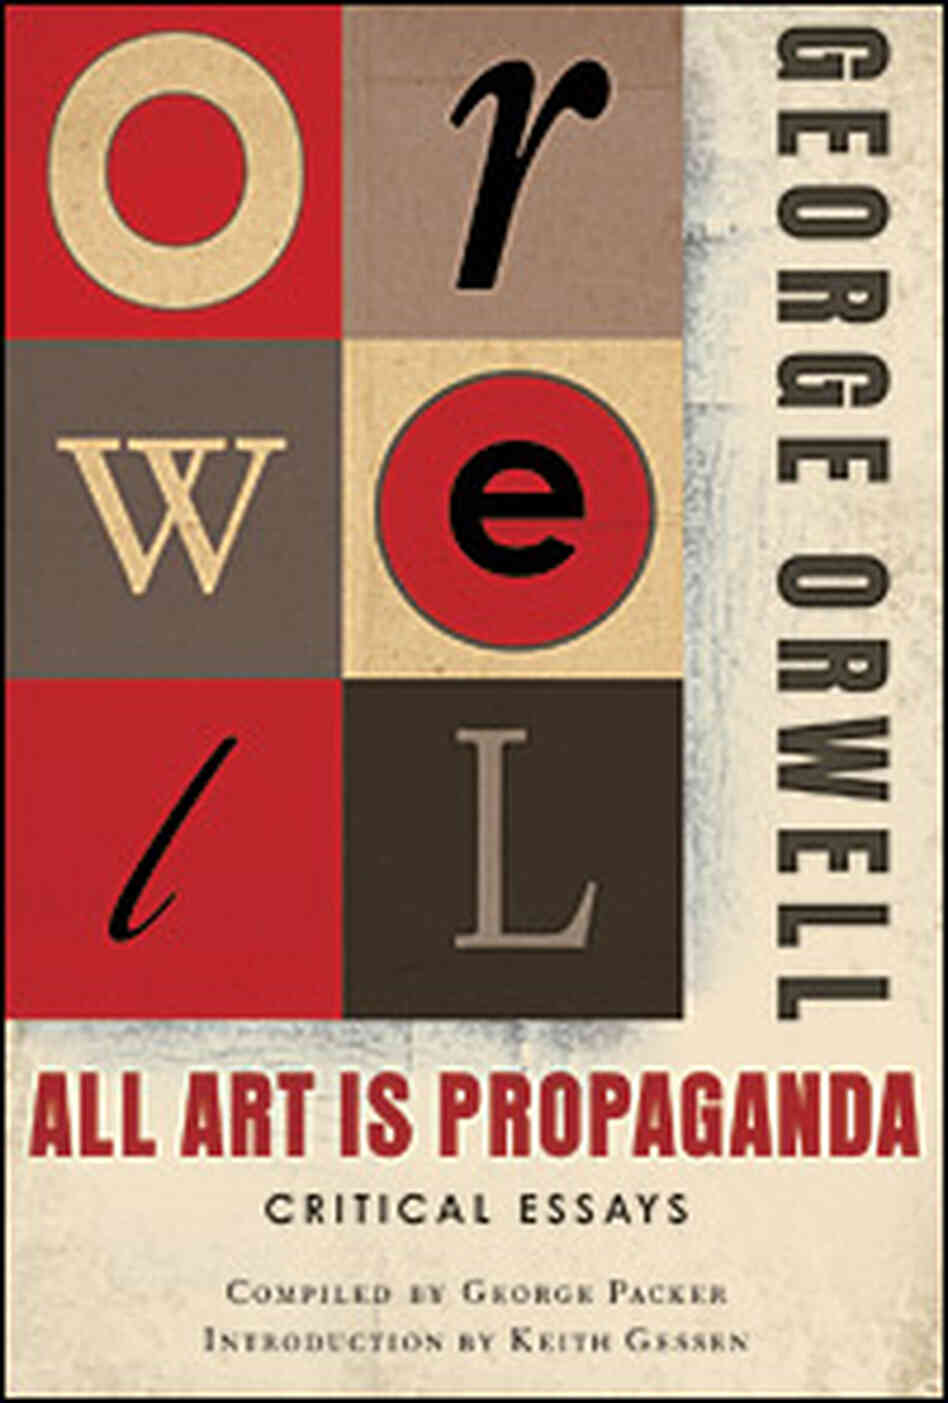 george orwell a collection of critical essays